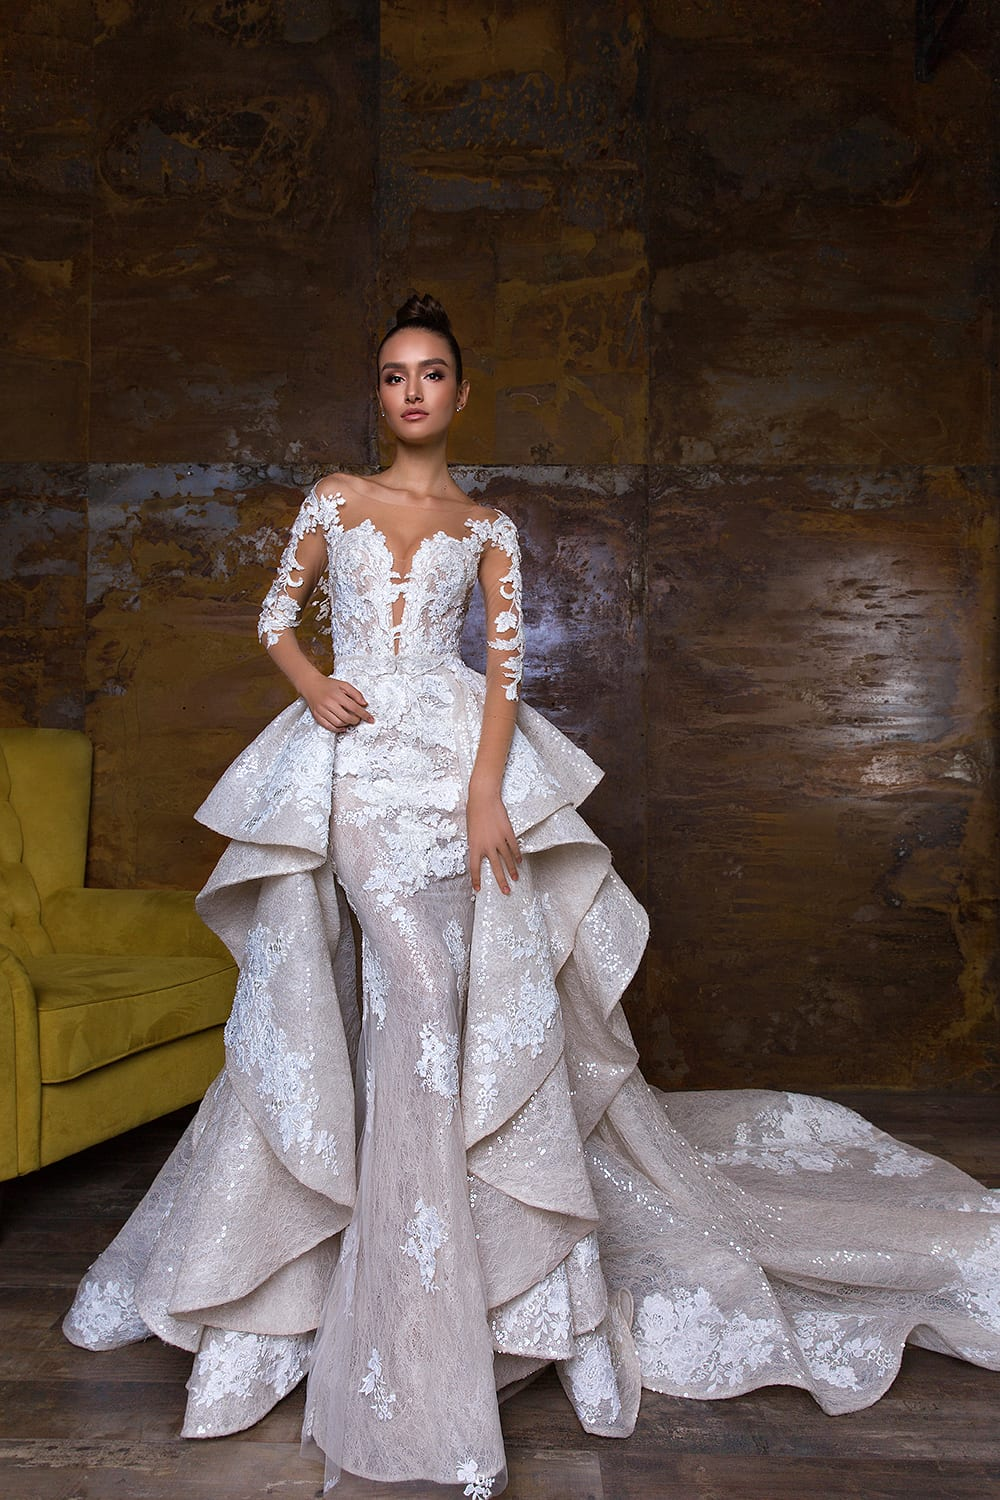 Captivating Wedding Outfit Ideas